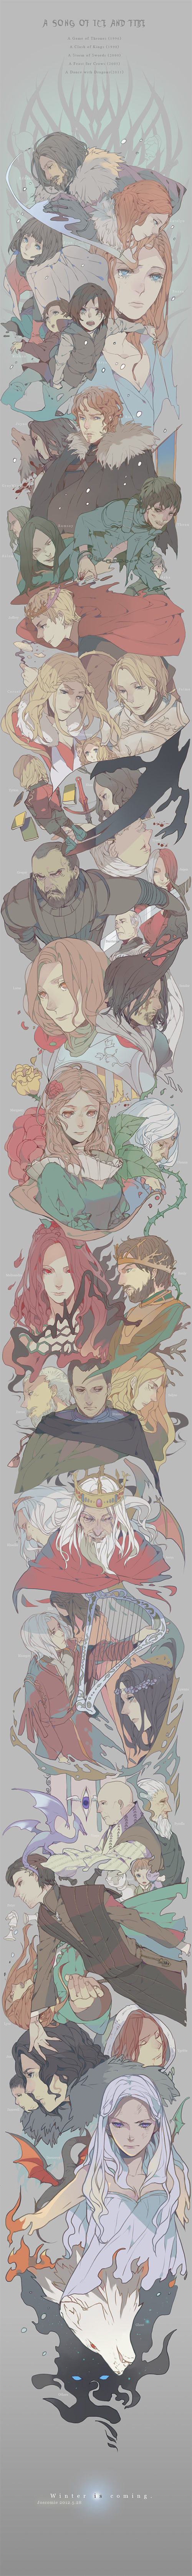 A Song of Ice and Fire by Wavesheep